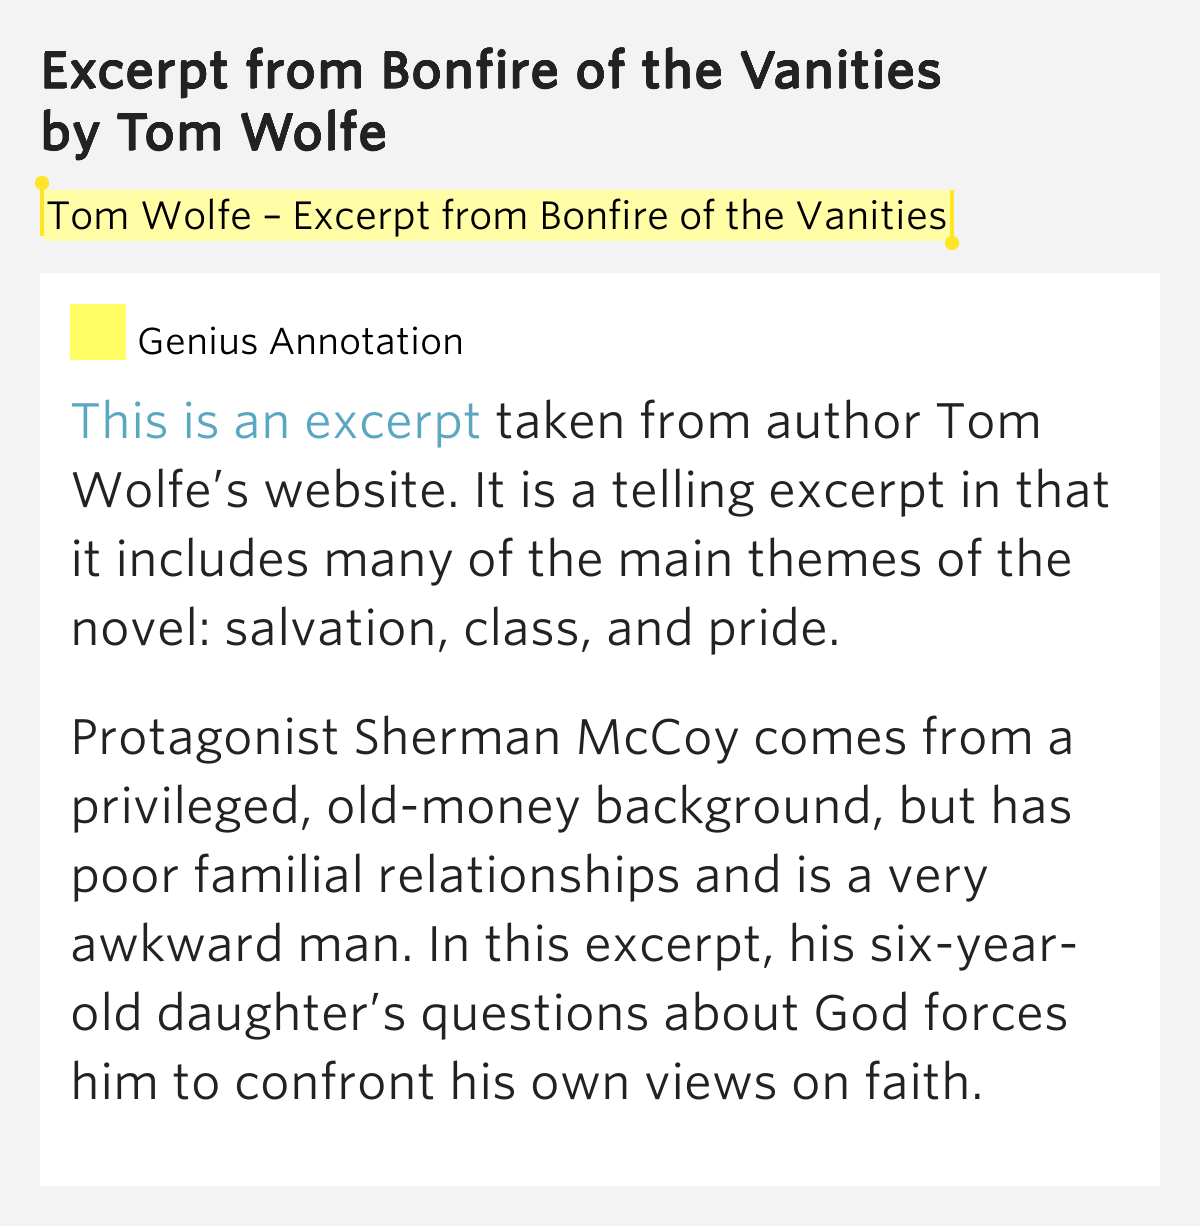 an analysis of tom wolfes book bonfire of the vanities Here, according to the staff at politics & prose, are 11 of the best political books of all time here, according to the staff at politics & prose, are 11 of the best political books of all time menu the bonfire of the vanities, by tom wolfe.